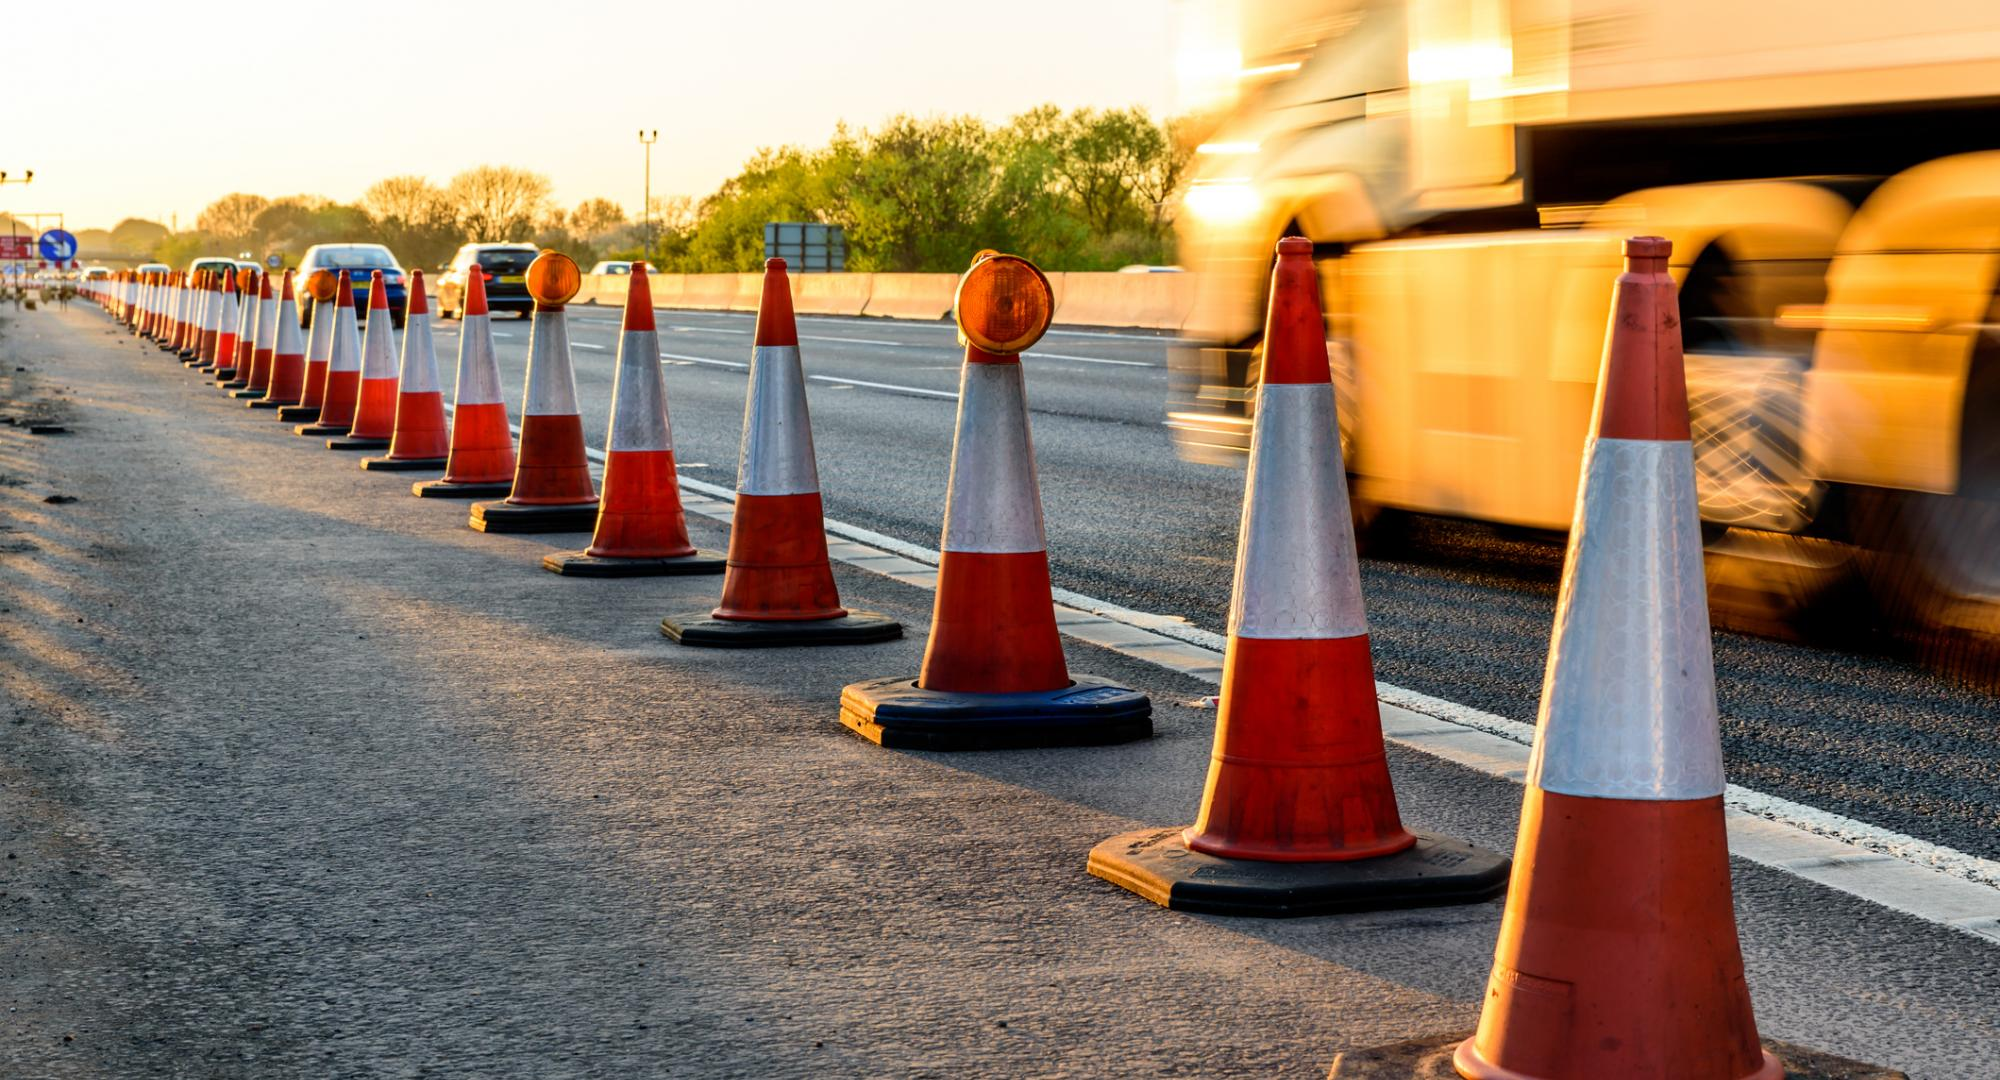 Traffic cones on the side of the road